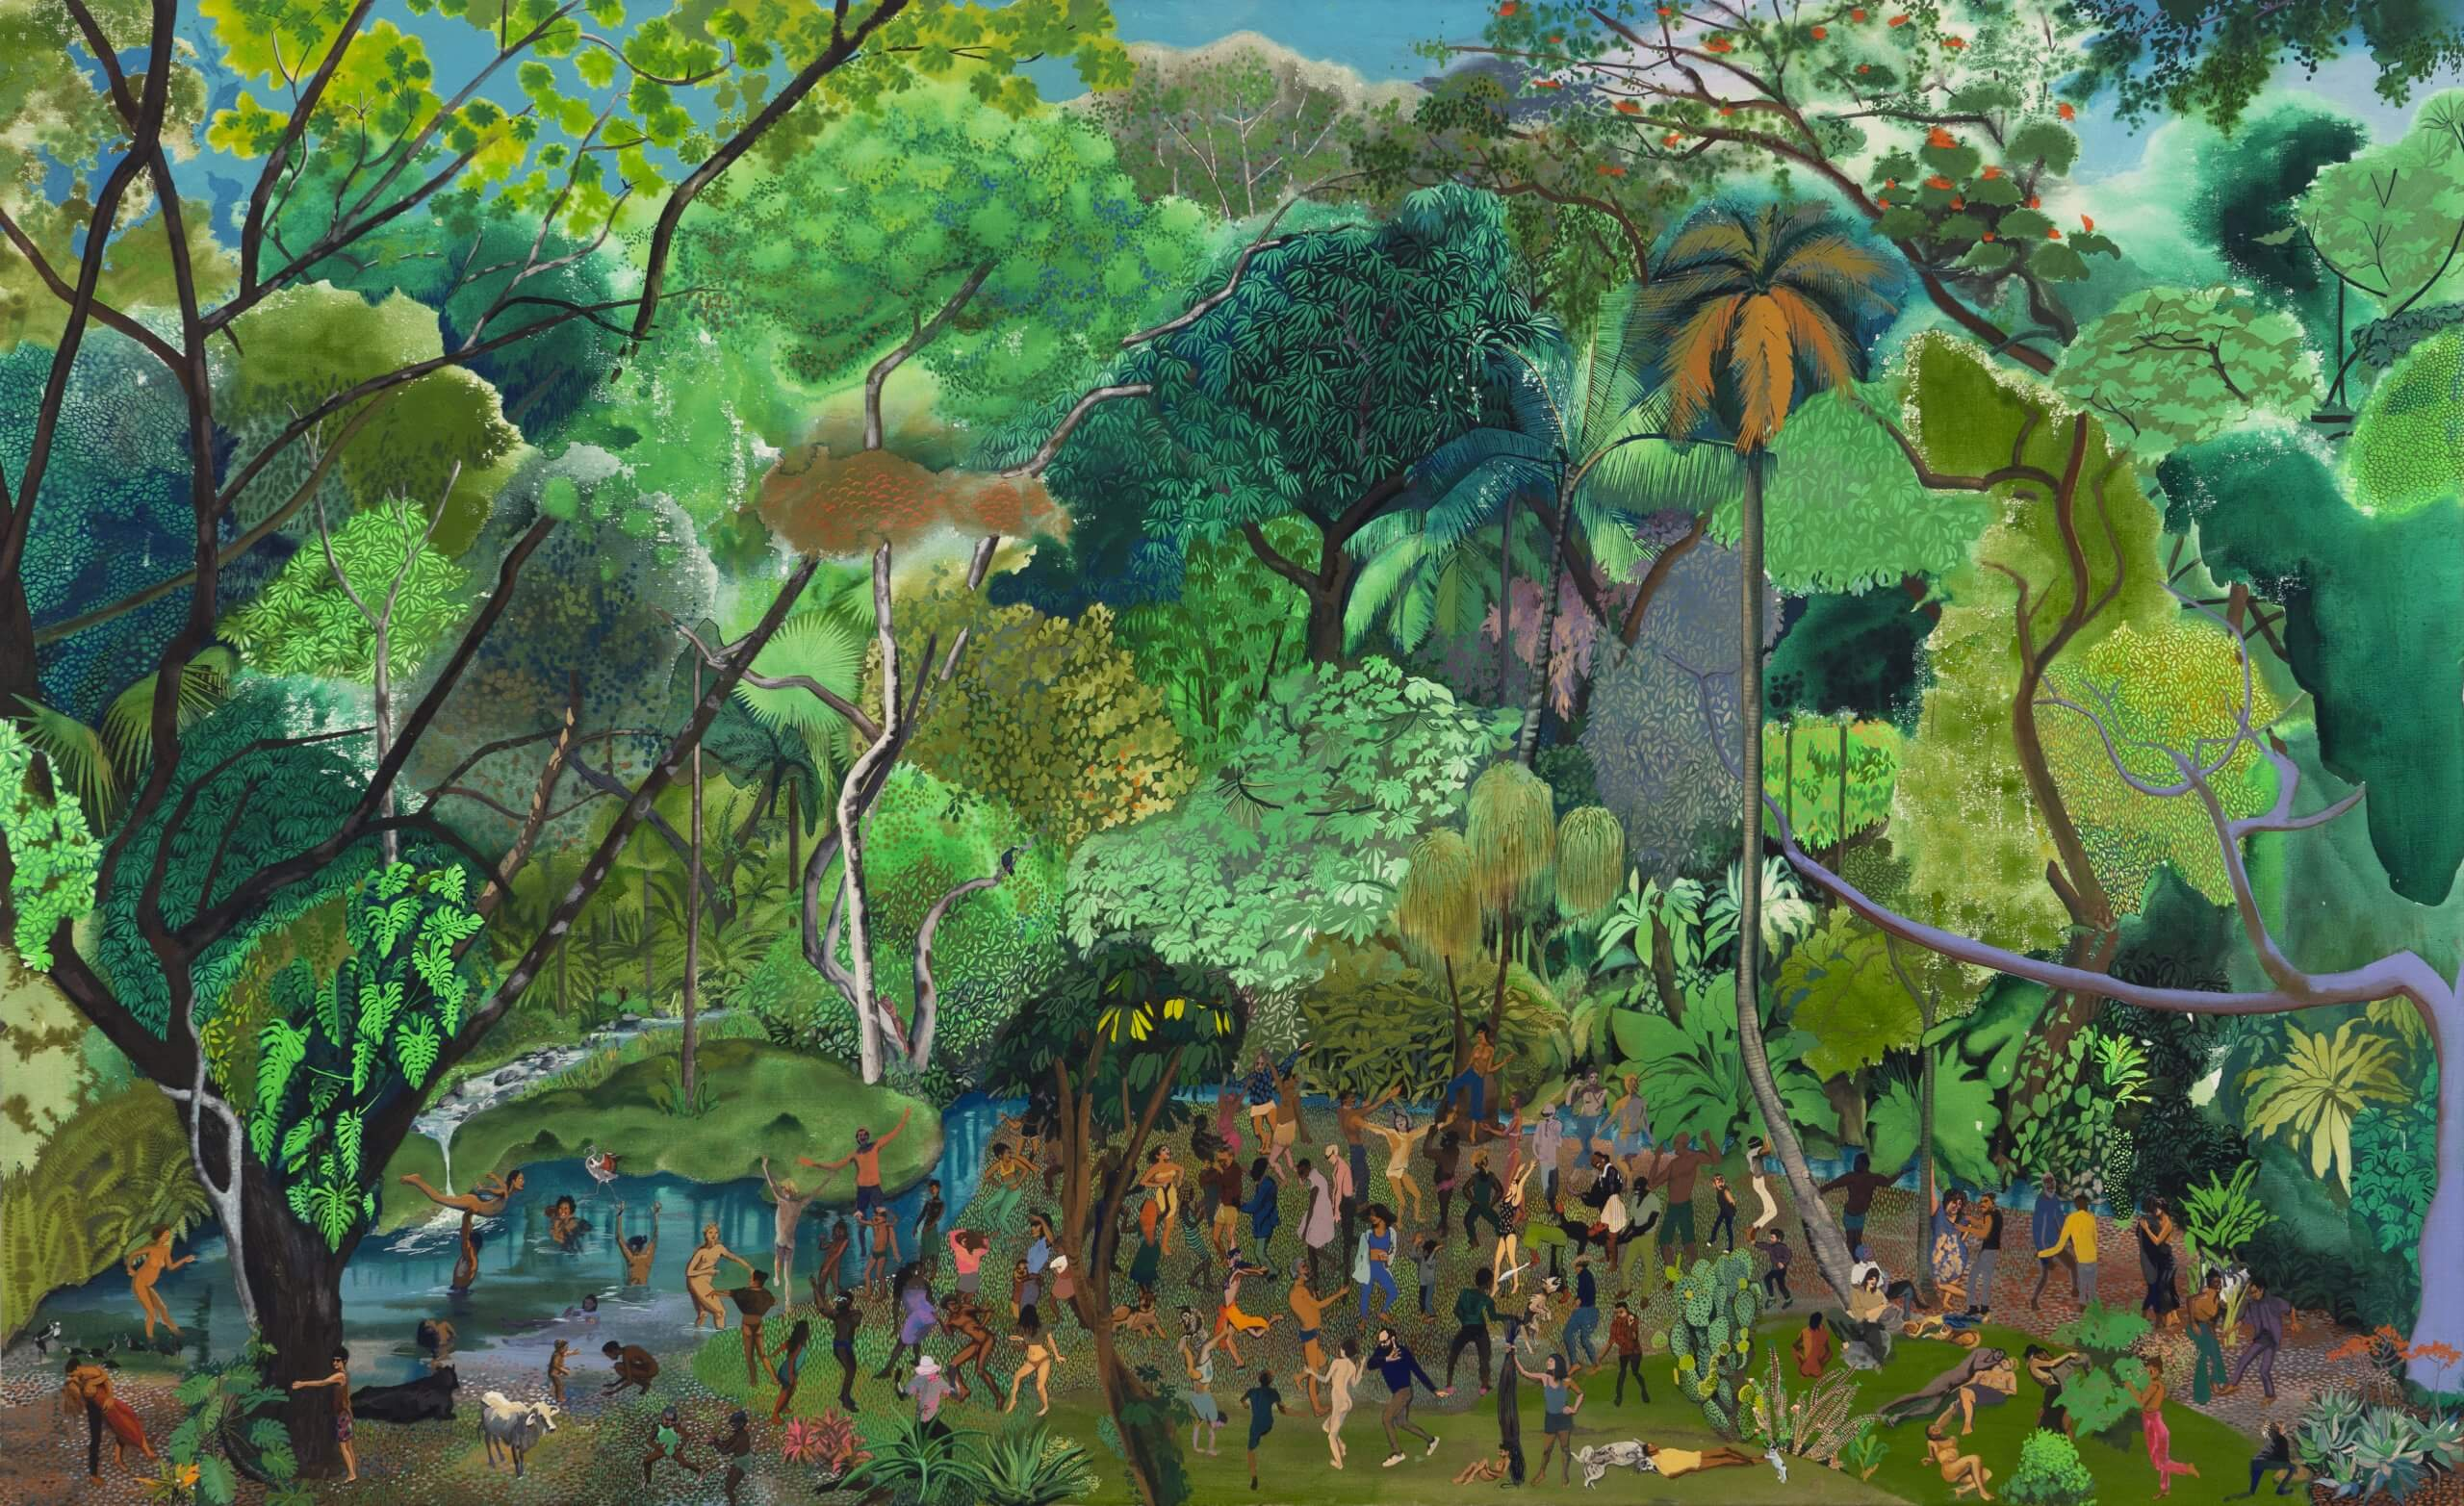 """Hulda Guzmán """"Come Dance""""-asked Nature kindly, 2020 acrylic gouache on linen 48 x 78 in. (121.9 x 198.1 cm.)"""